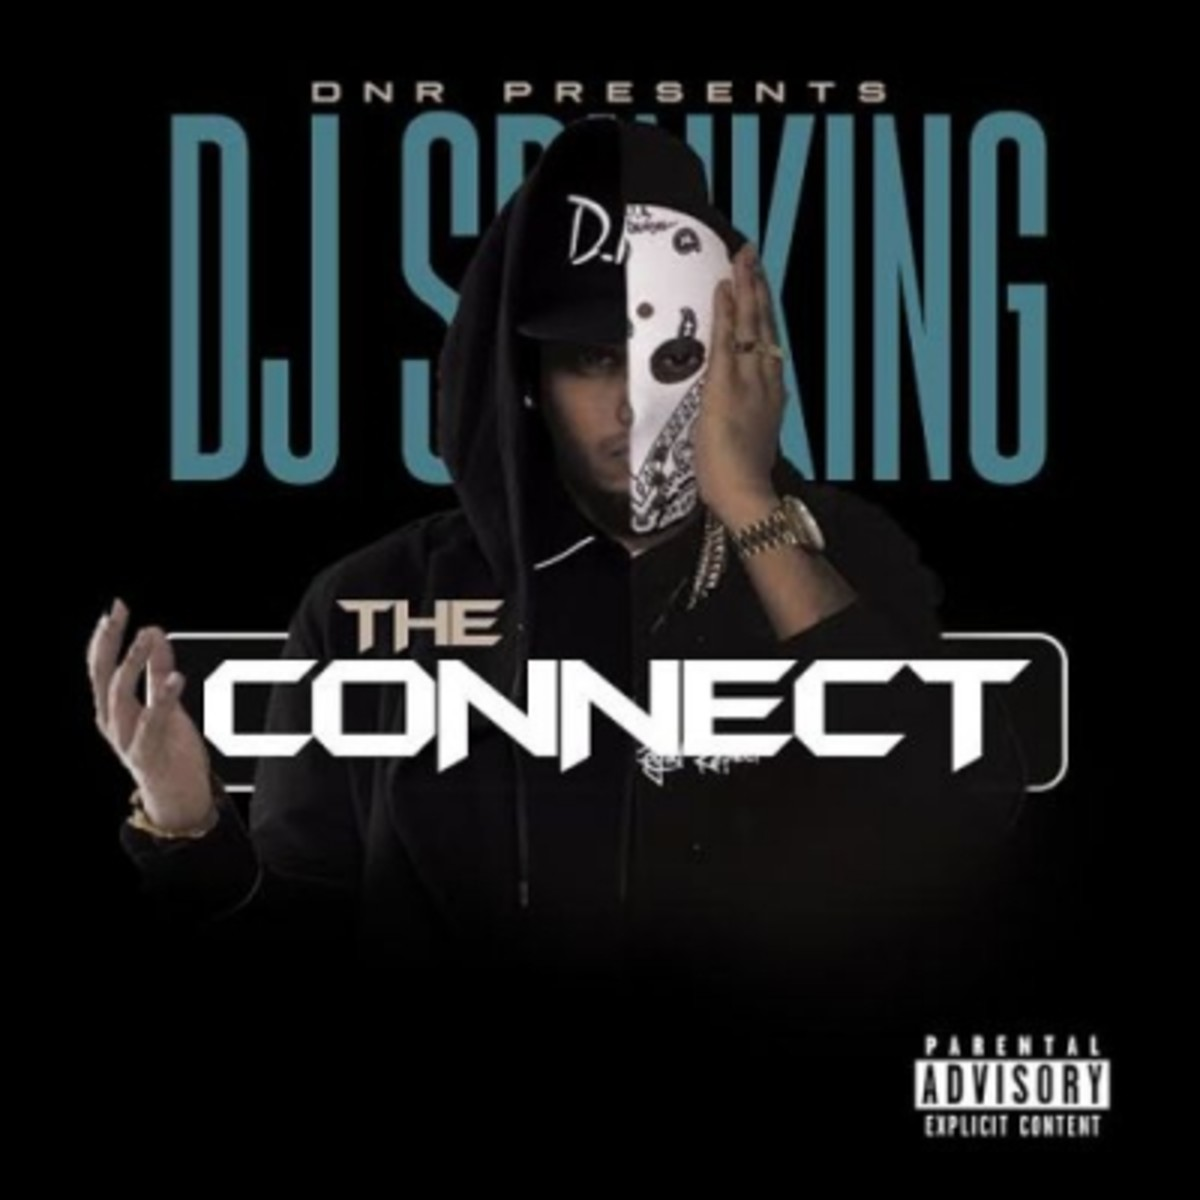 dj-spinking-the-connect.jpg